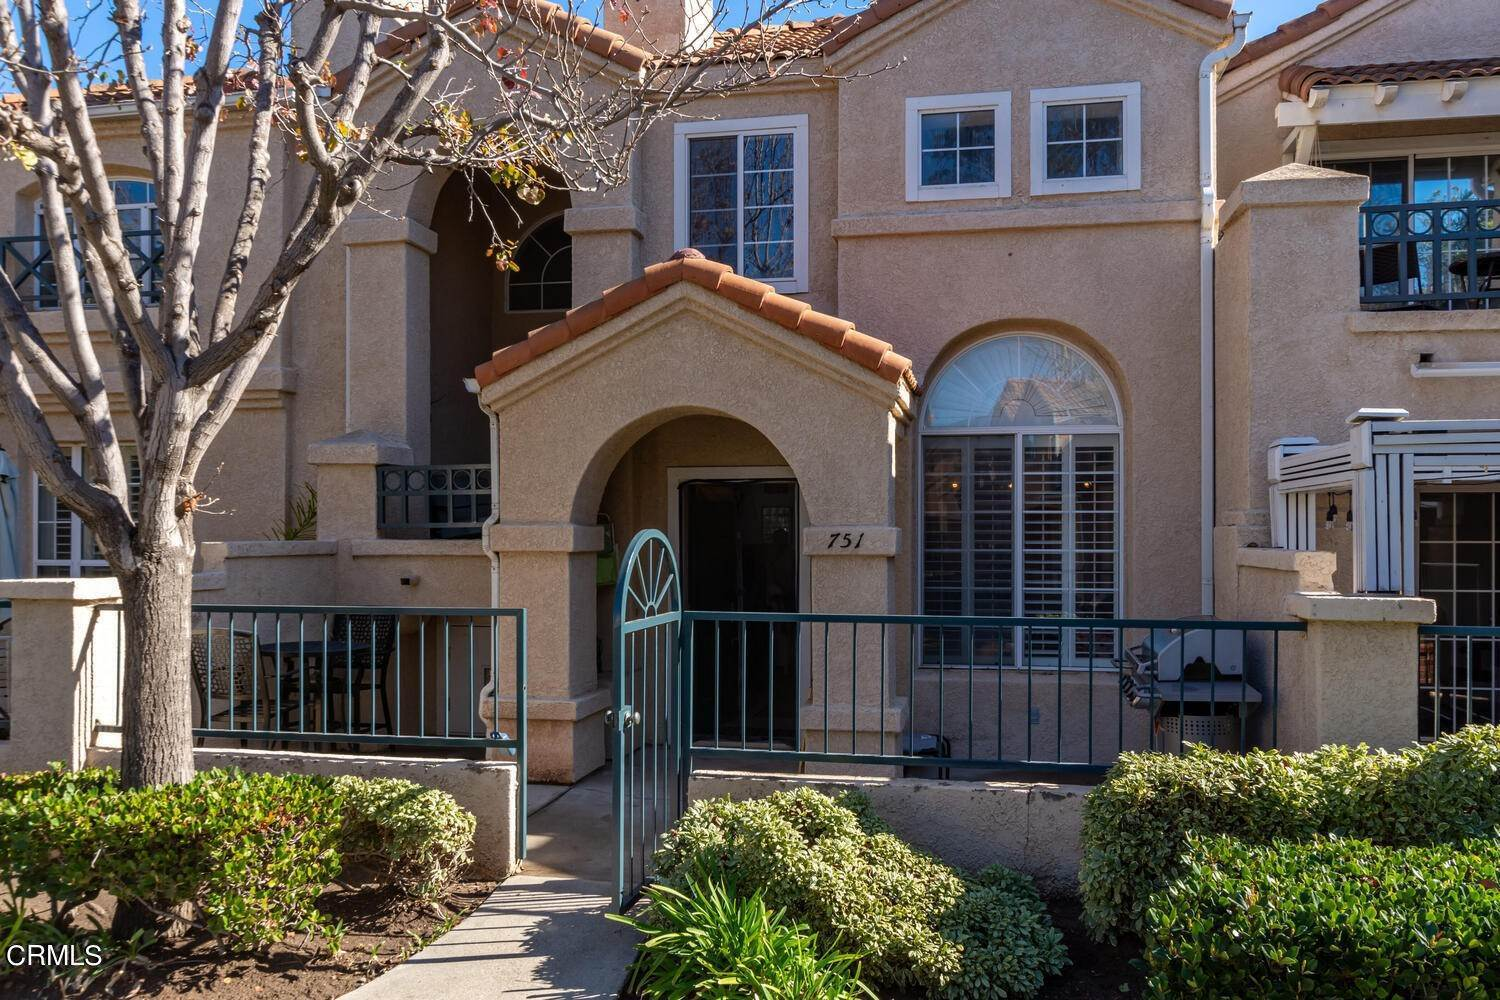 townhouses for Sale at 751 Kingfisher Way Oxnard, California 93030 United States